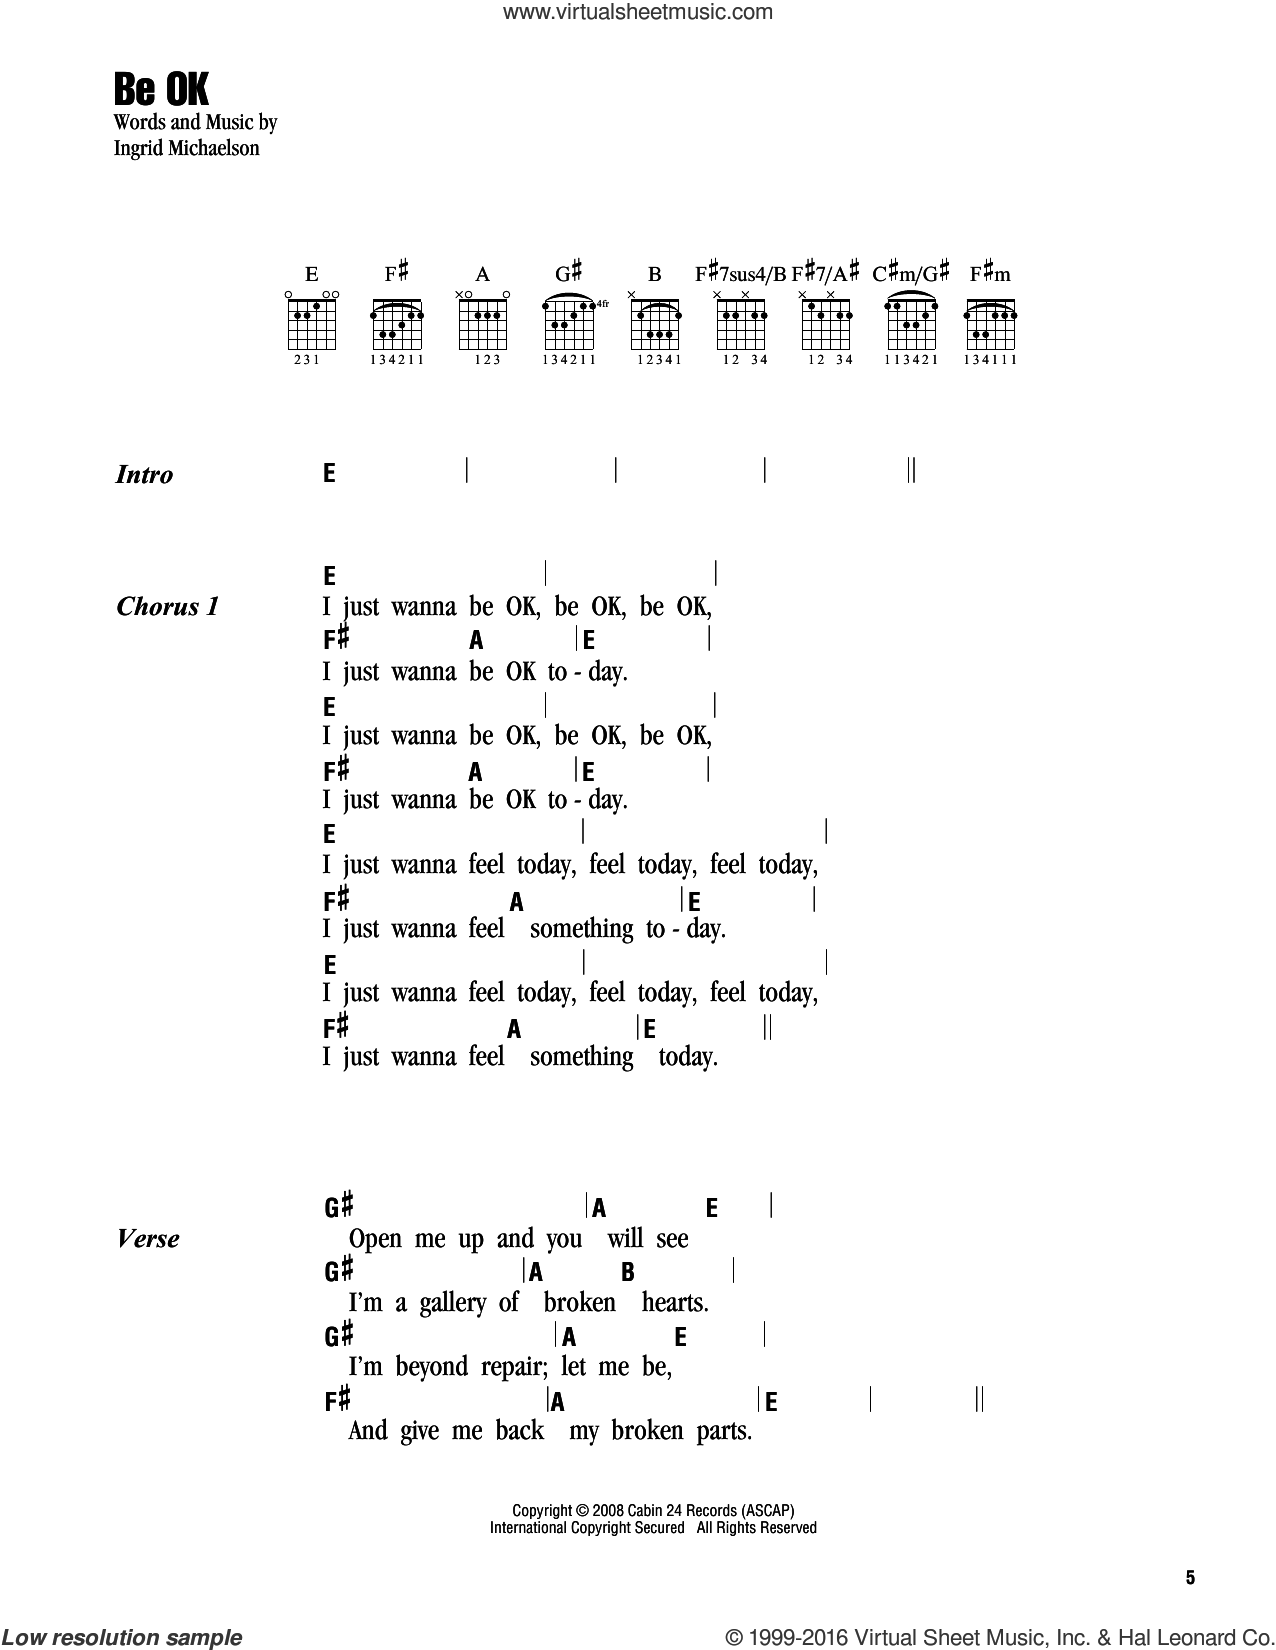 Be OK sheet music for guitar (chords) by Ingrid Michaelson. Score Image Preview.